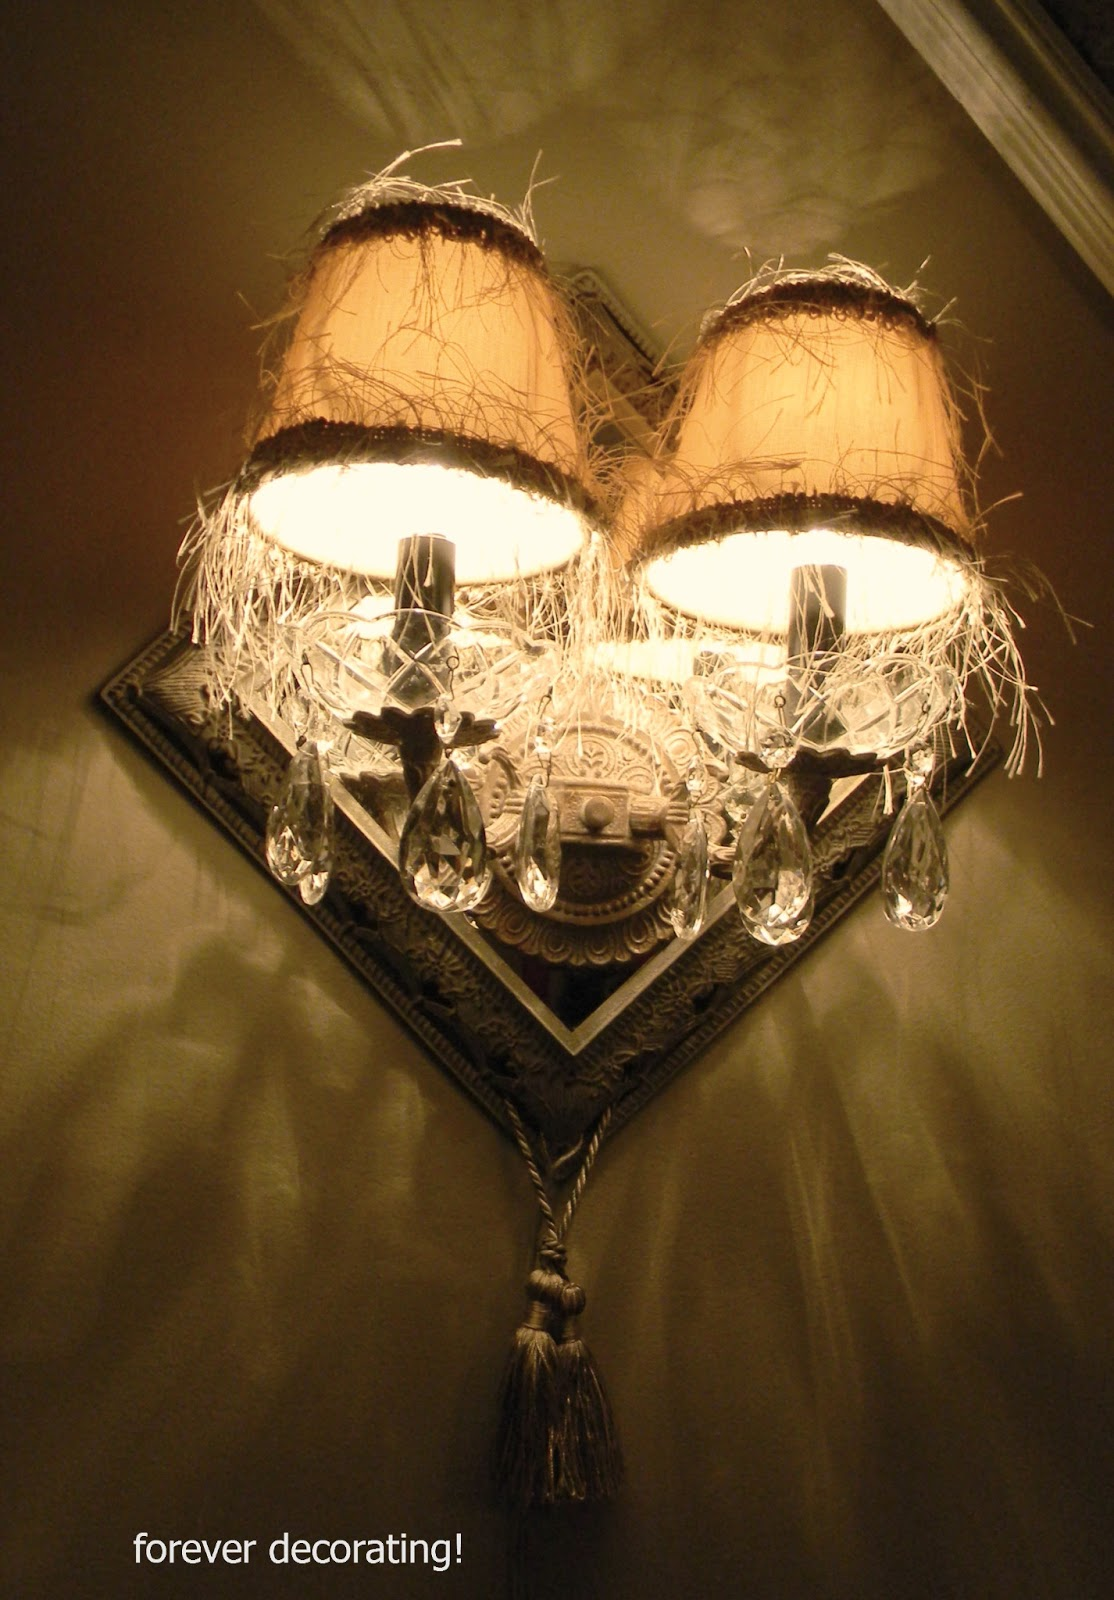 Forever Decorating Electrifying Sconces Hard Wiring Wall I Dont Want To Hire An Electrician Wire Them Into The Walls Because Tend Move Things Around On And This Would Make Permanent